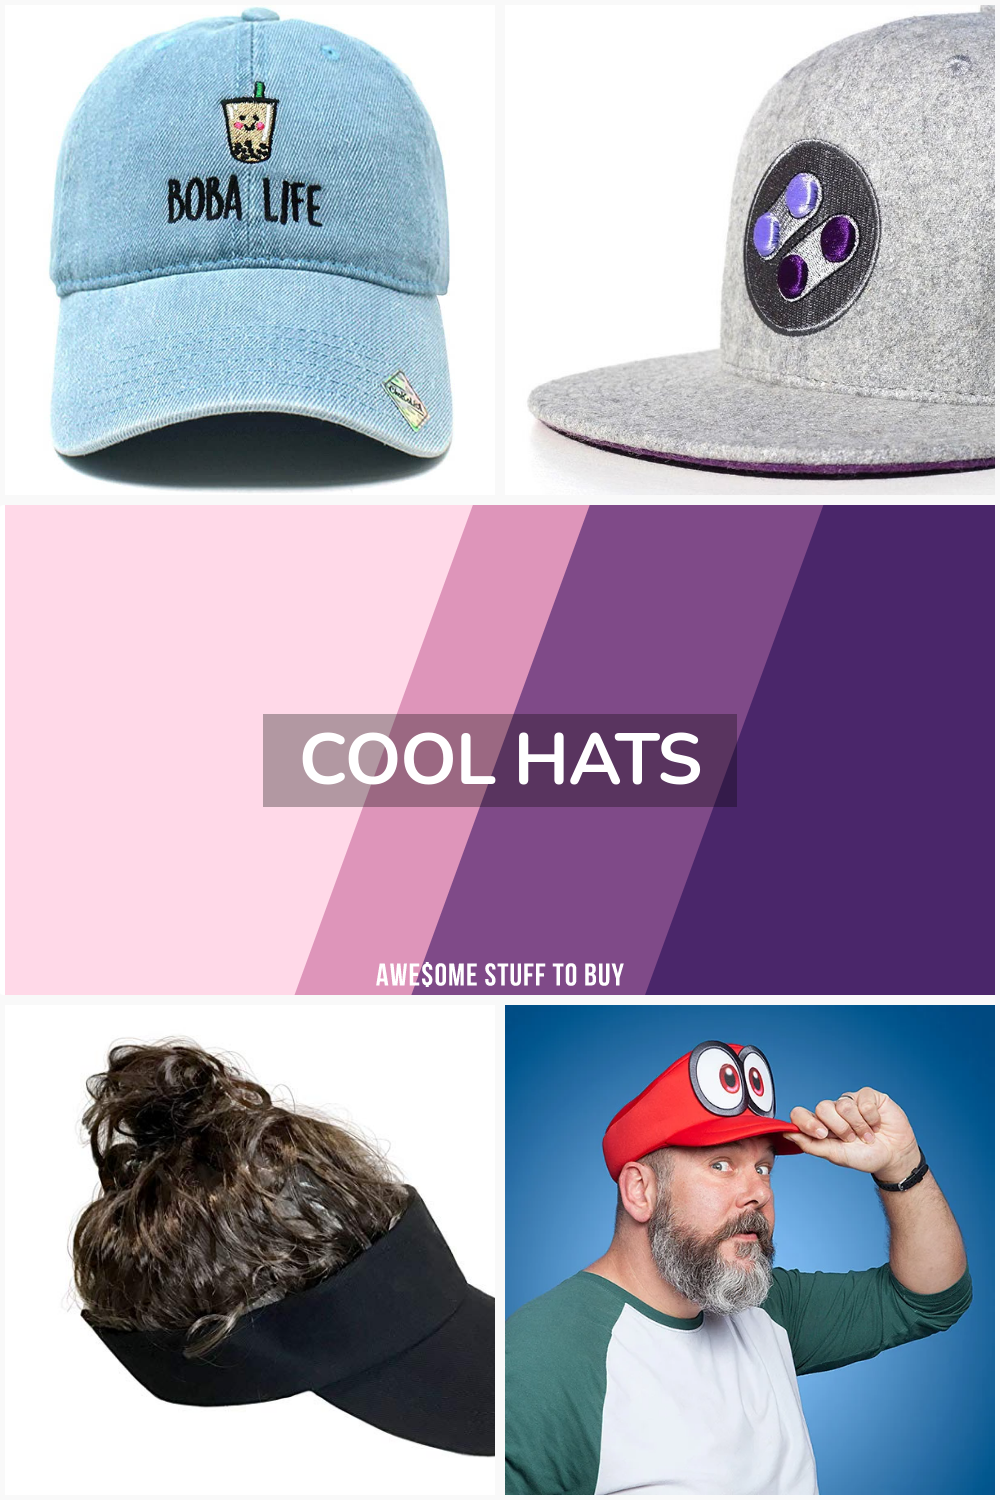 Cool Hats // Awesome Stuff to Buy